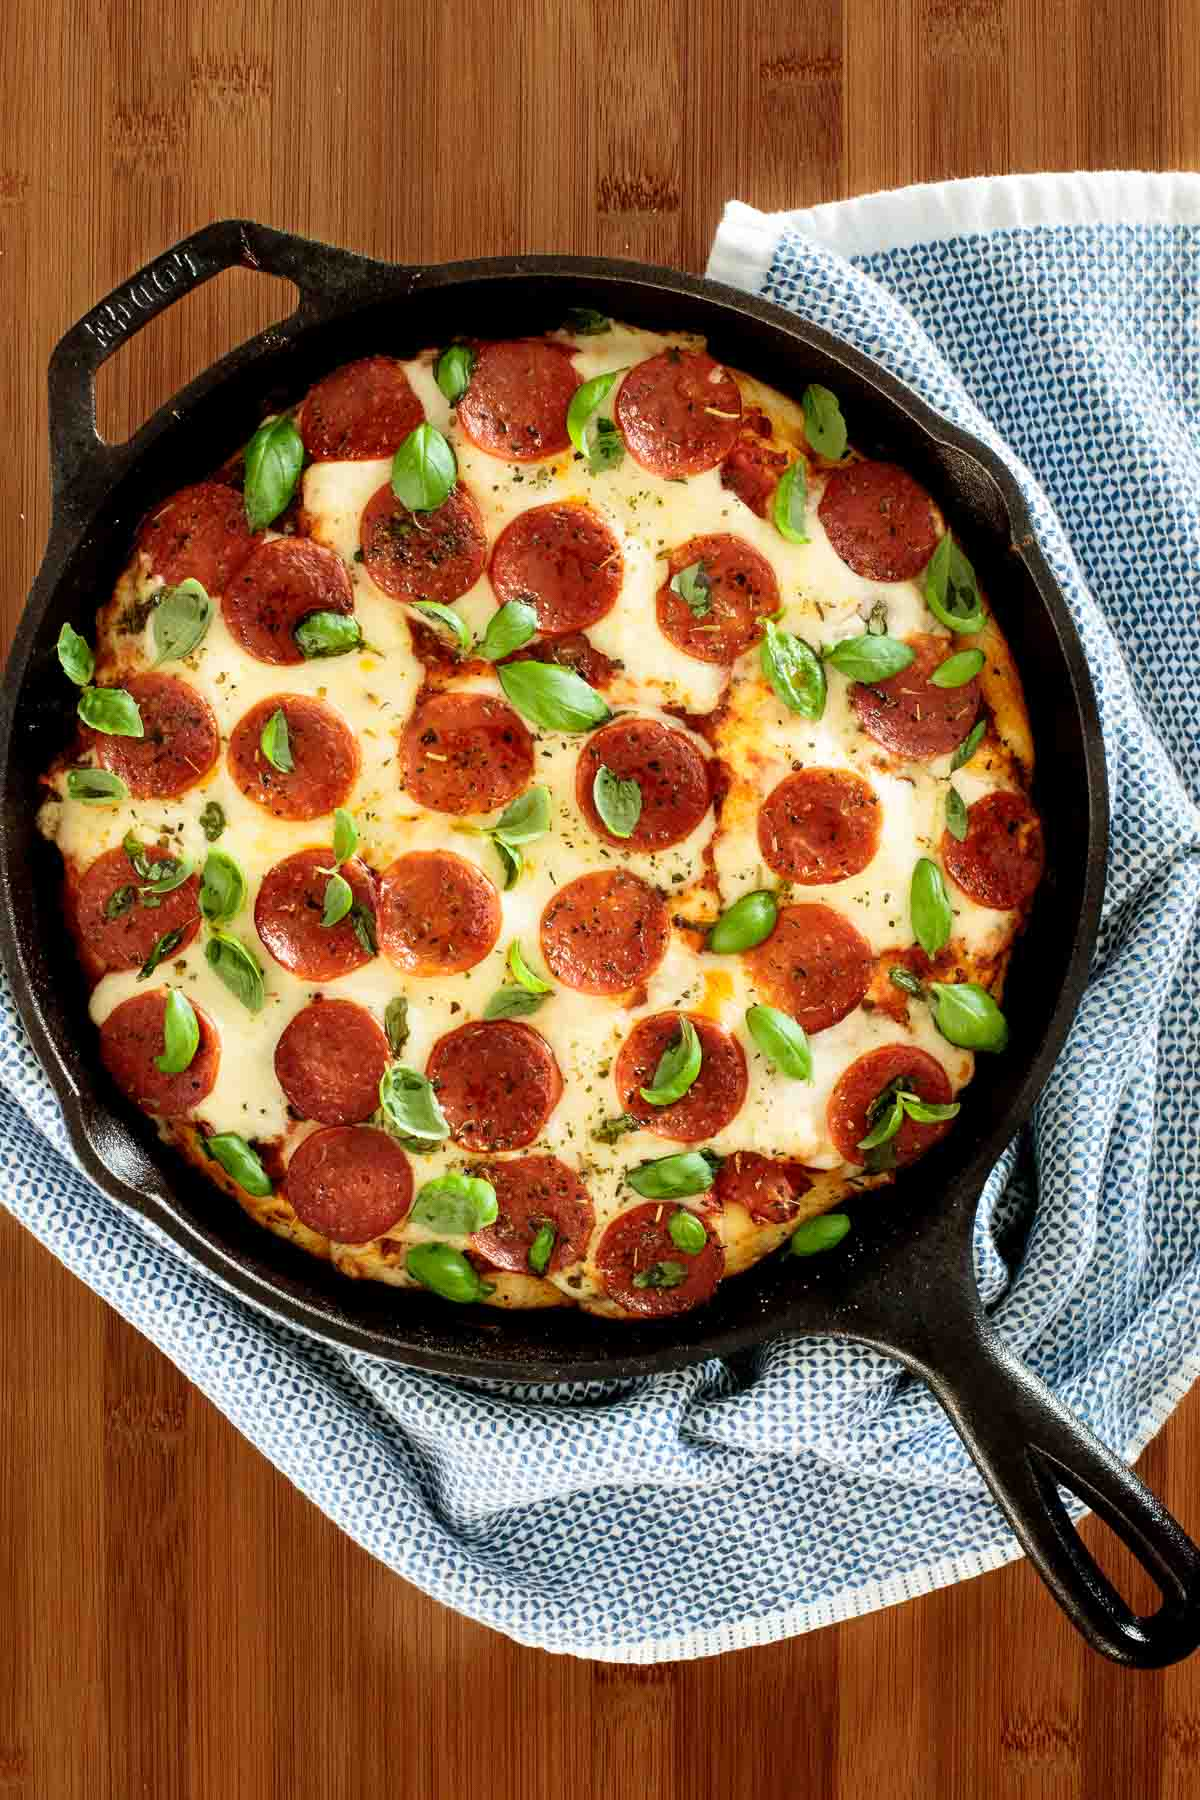 Overhead photo of an Easy Deep Dish Pepperoni Pizza baked in a cast iron skillet resting on a wood cutting board and surrounded by a blue and white towel.